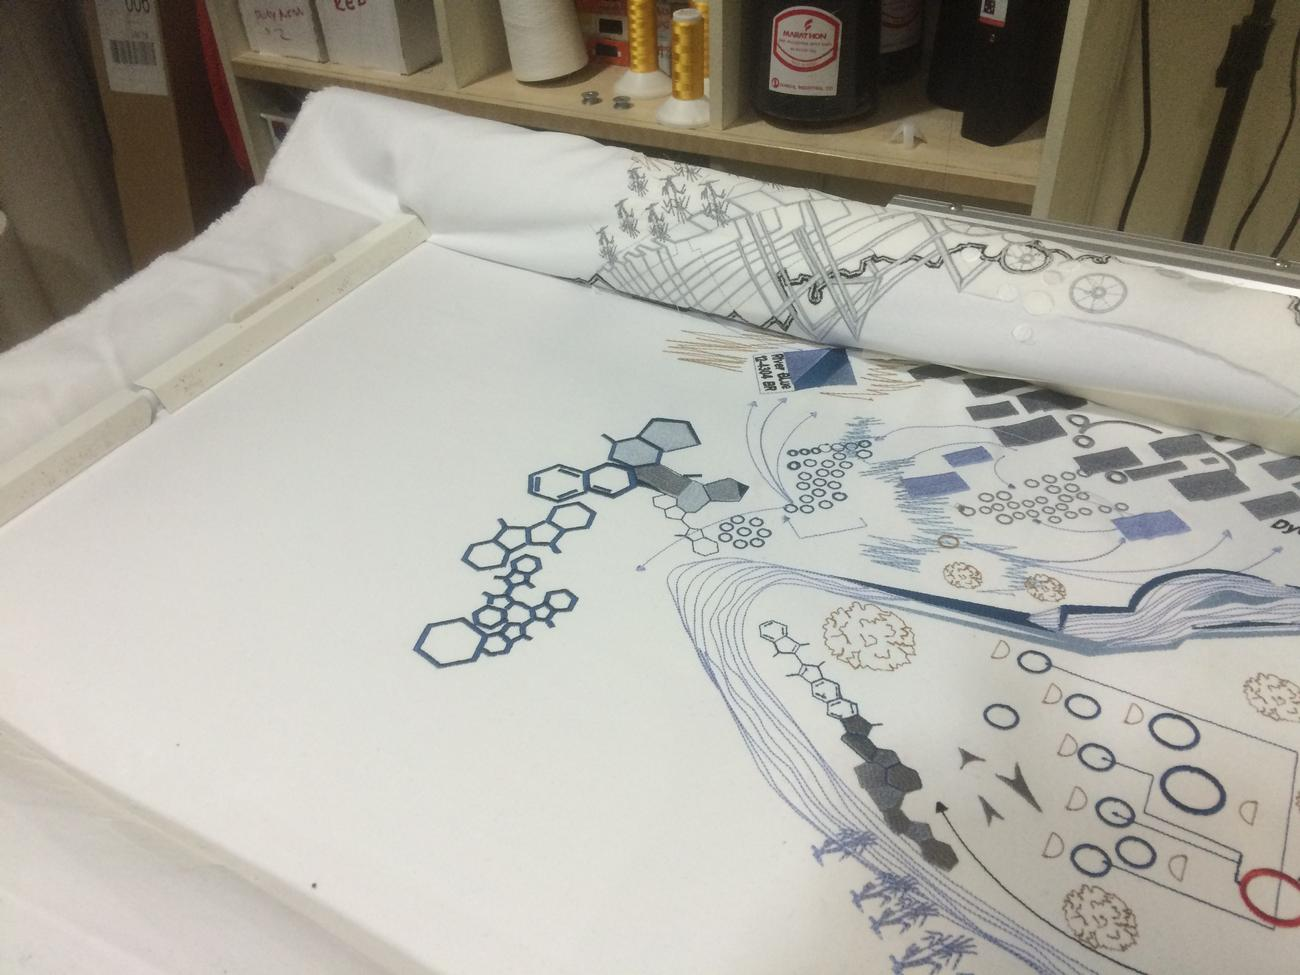 Architects plans extra large embroidery in perivale and west london